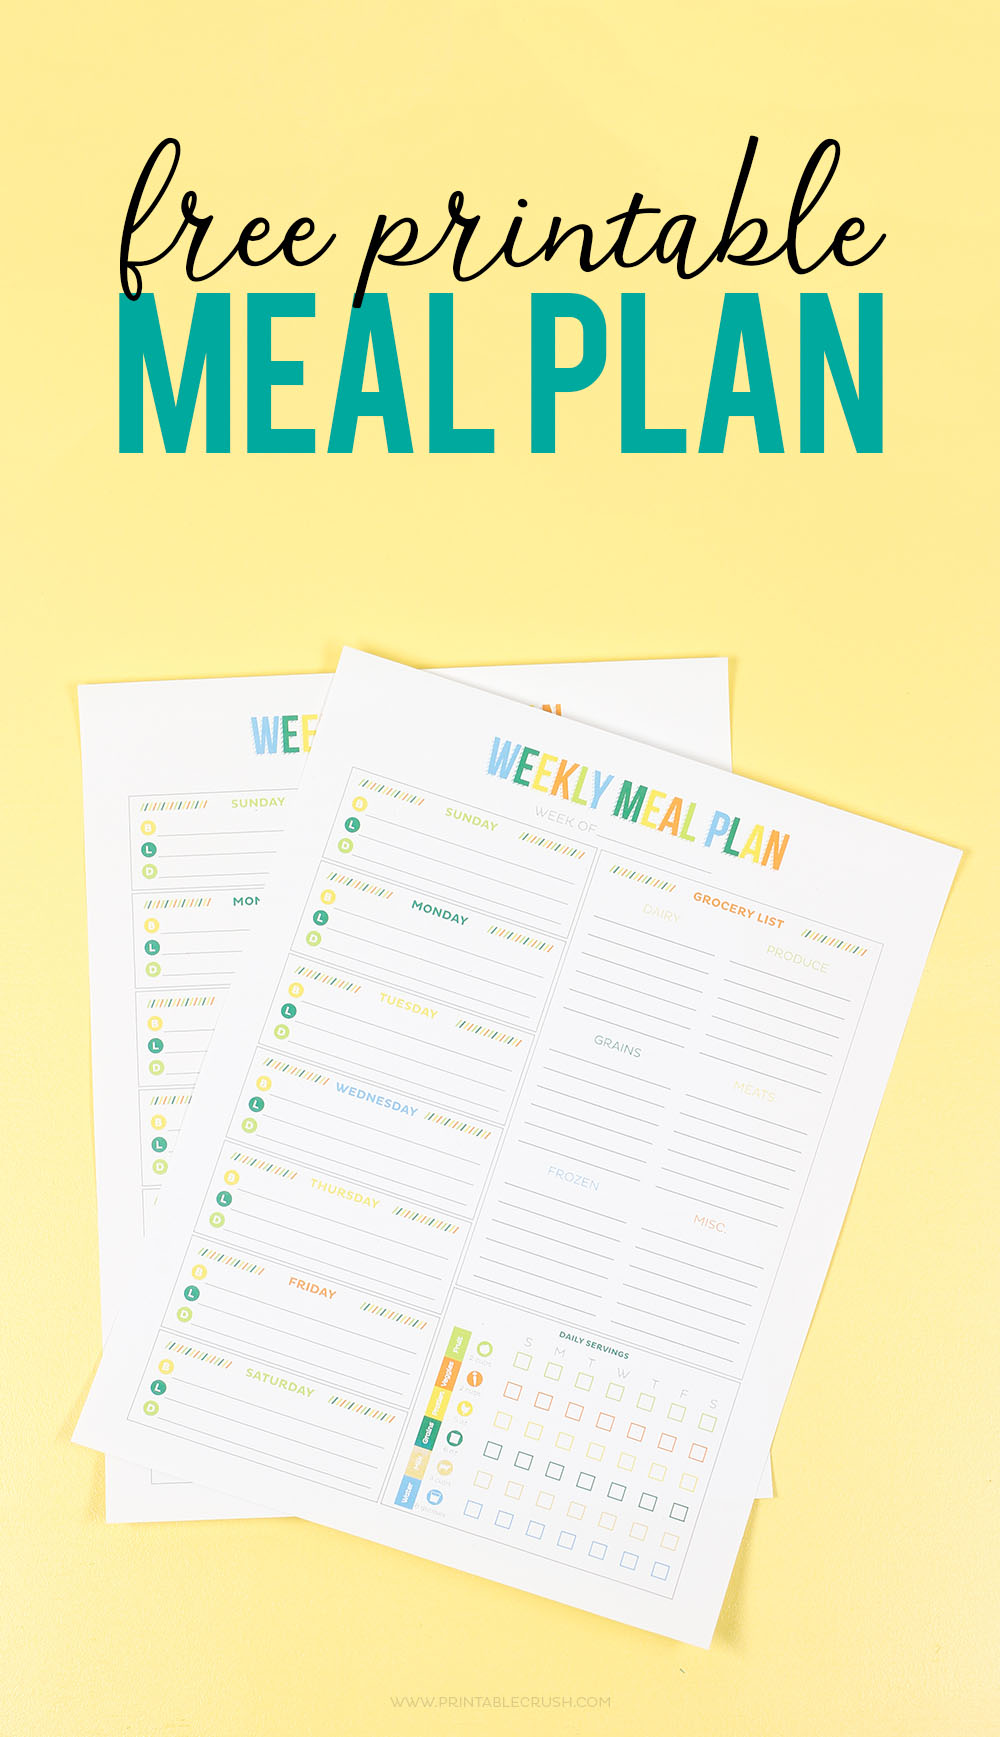 printable meal planner long image with yellow background